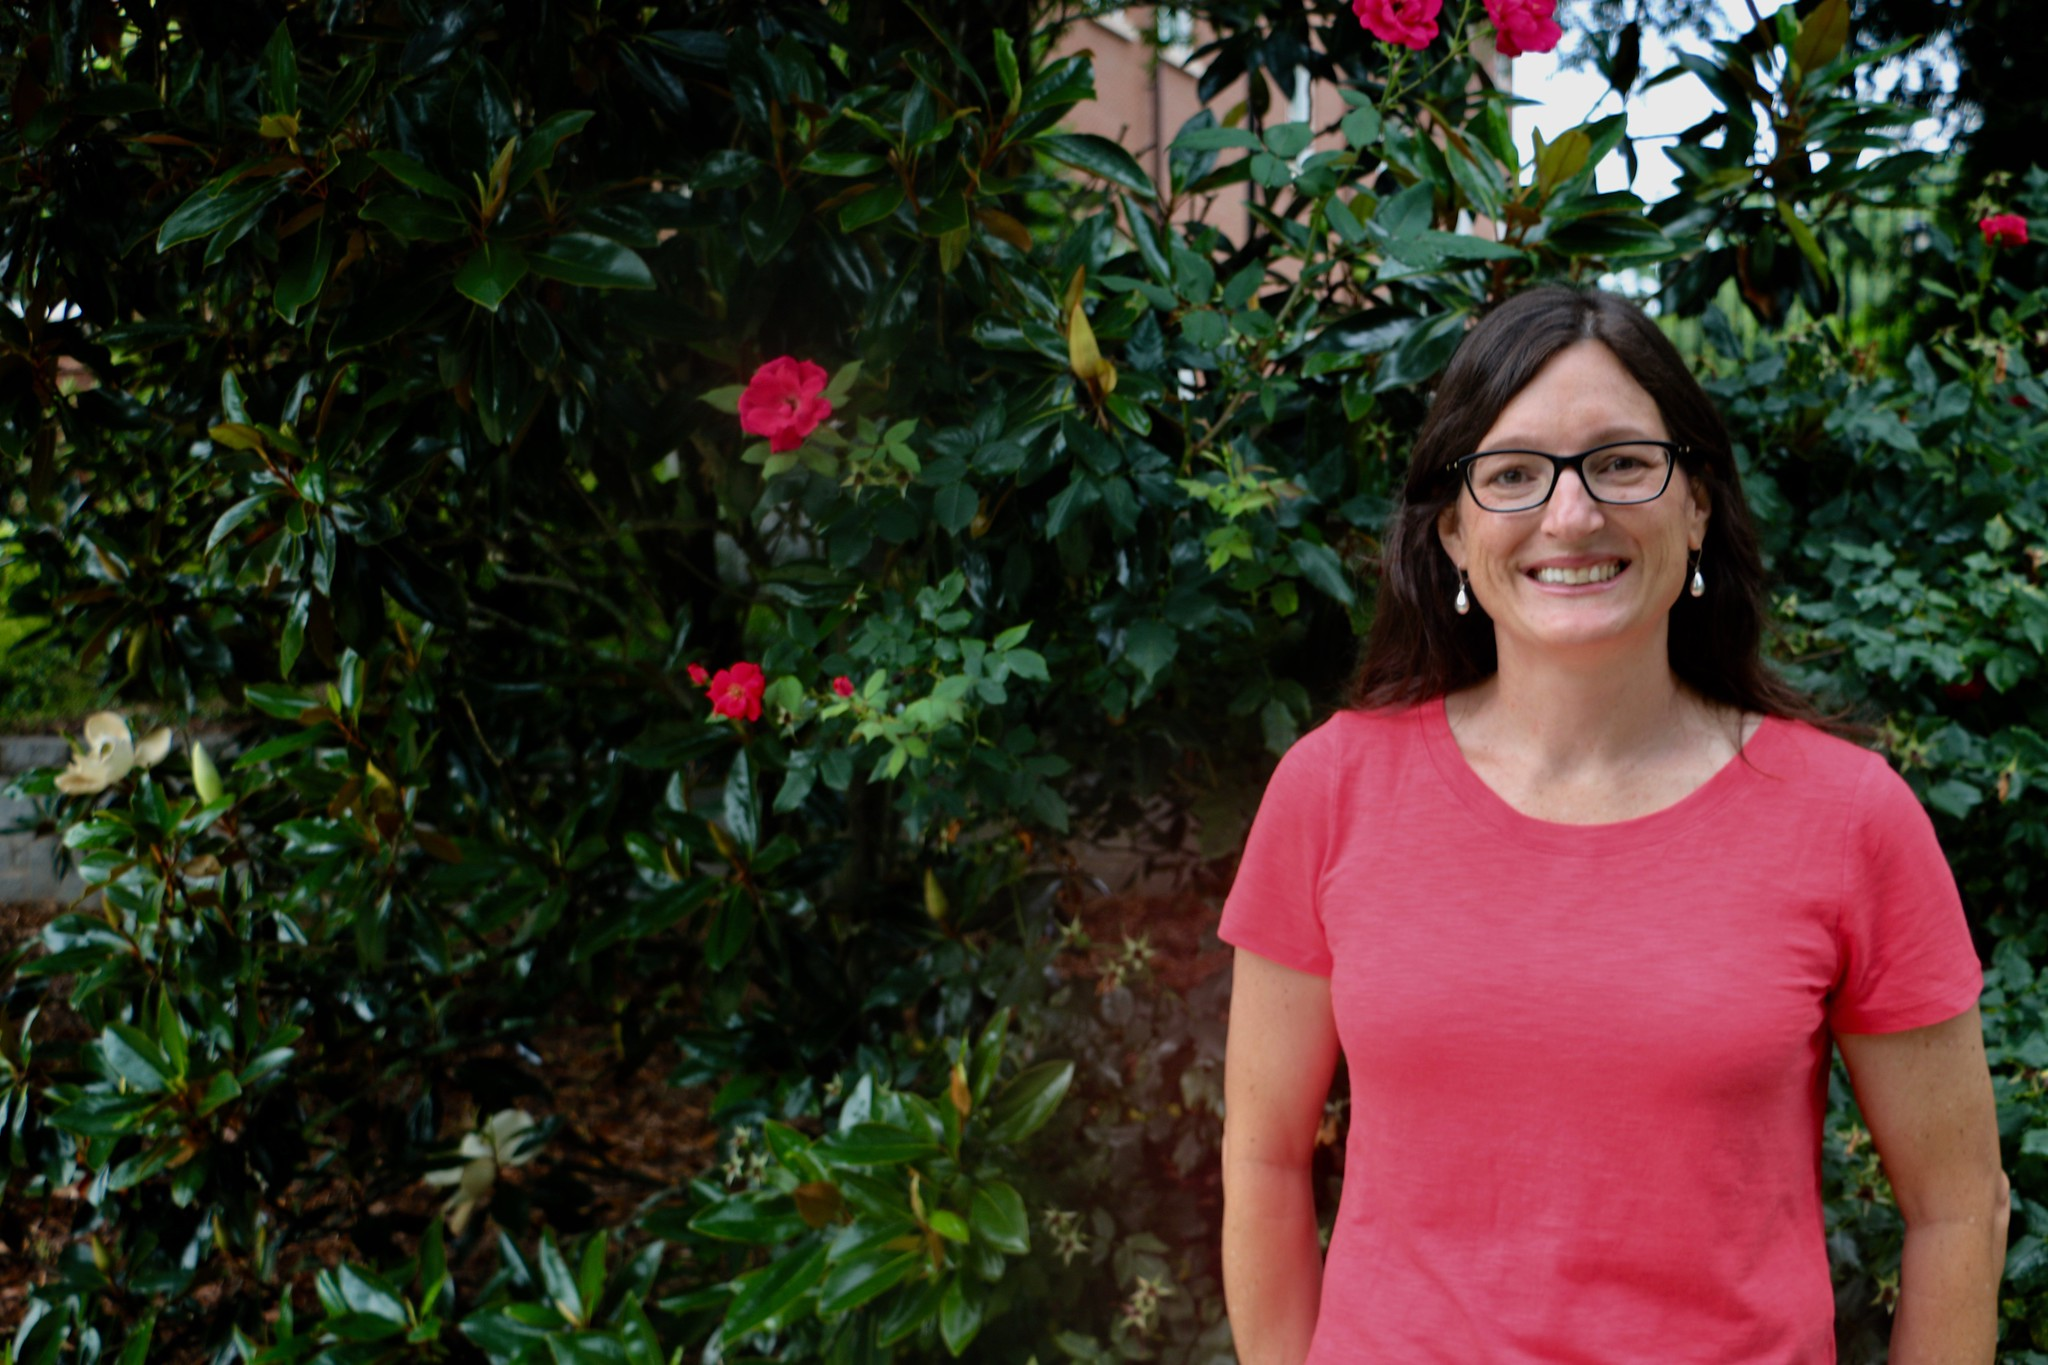 The 2021 D.W. Brooks Faculty Award for Excellence in Teaching goes to Marin Brewer.